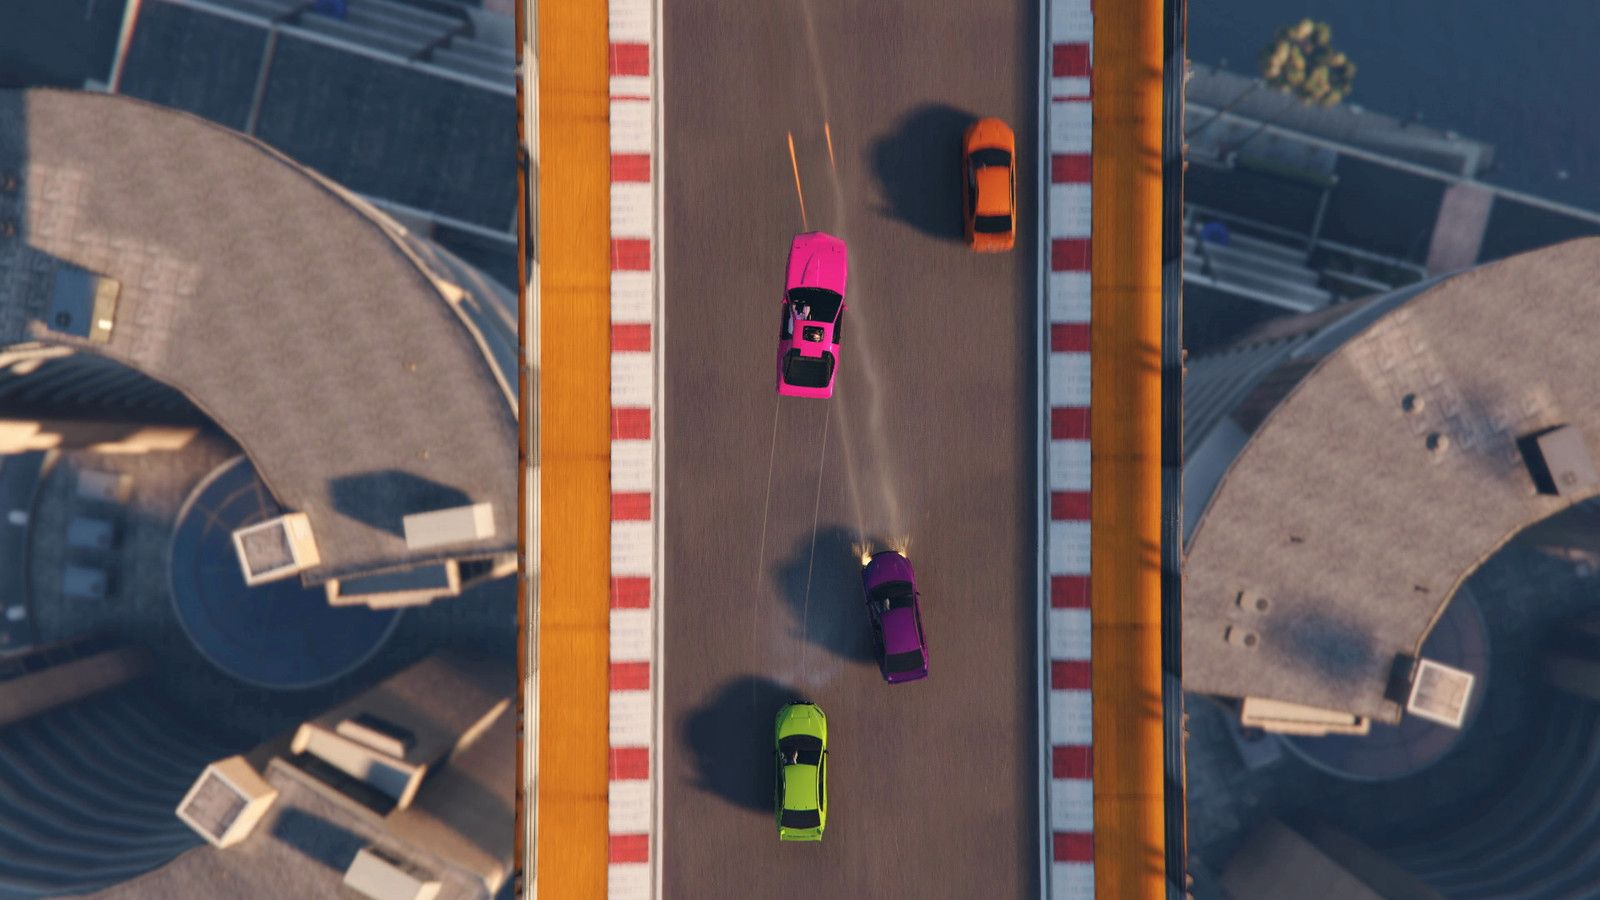 GTA Online goes old school with top-down Tiny Racers mode - Polygon